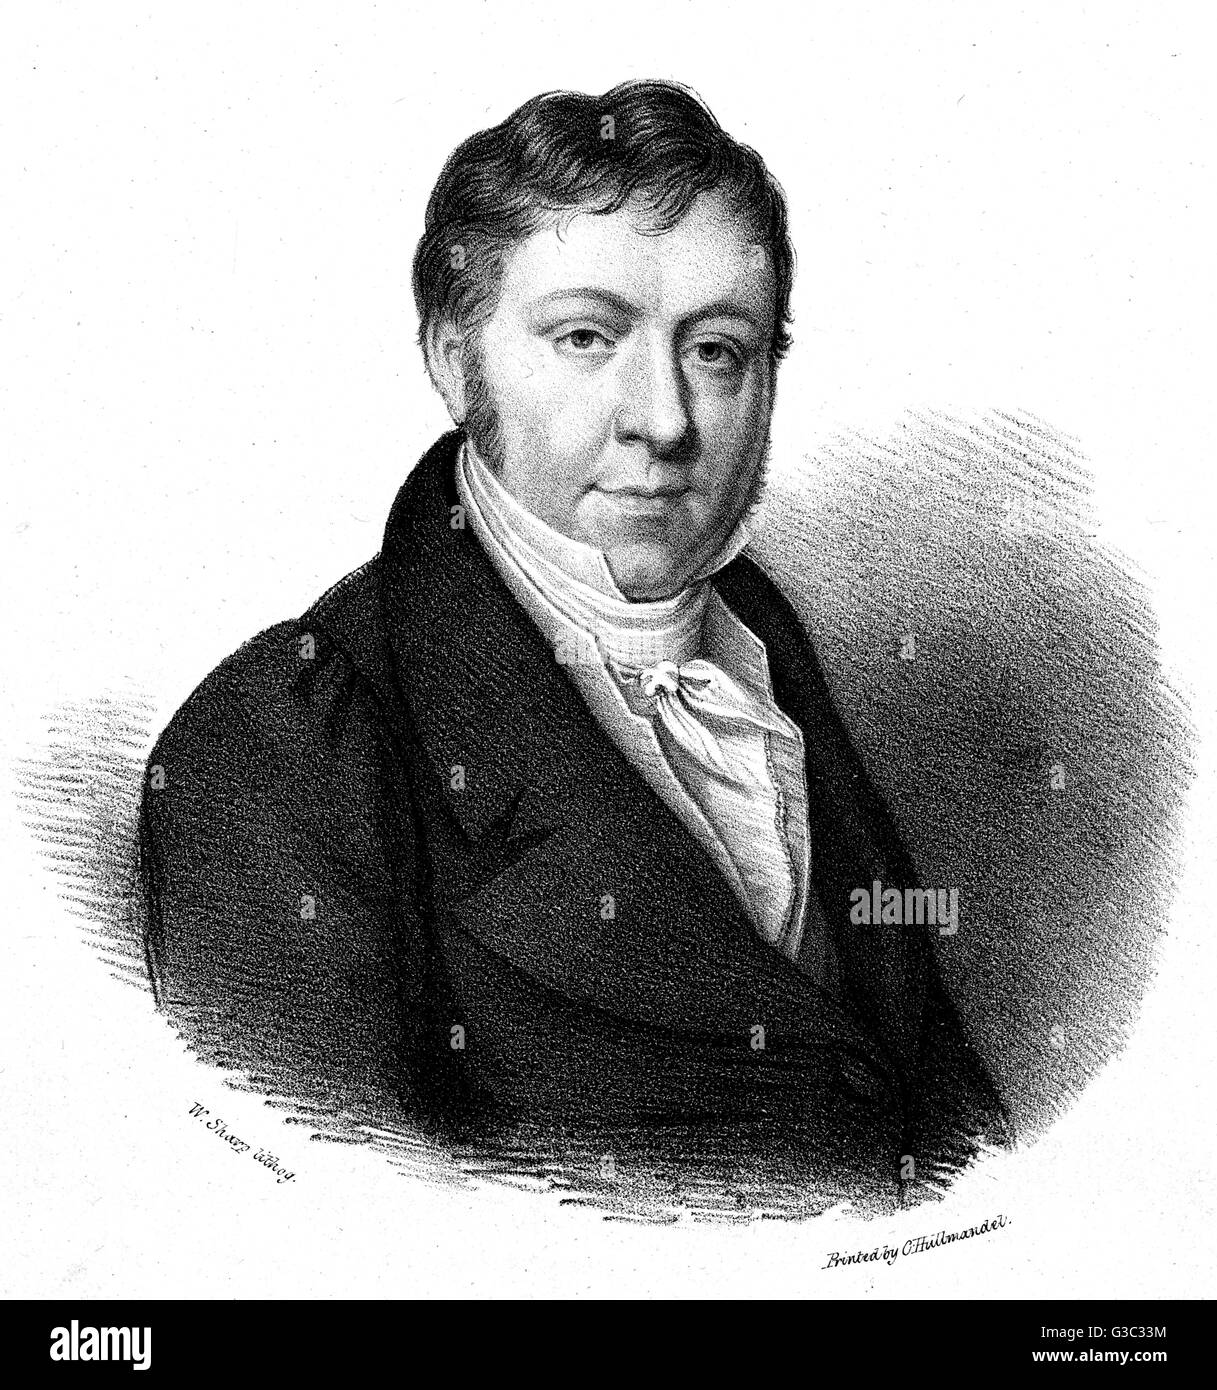 Johann Nepomuk Hummel (1778-1837), he was an Austrian composer and virtuoso pianist, his music shows the change - Stock Image